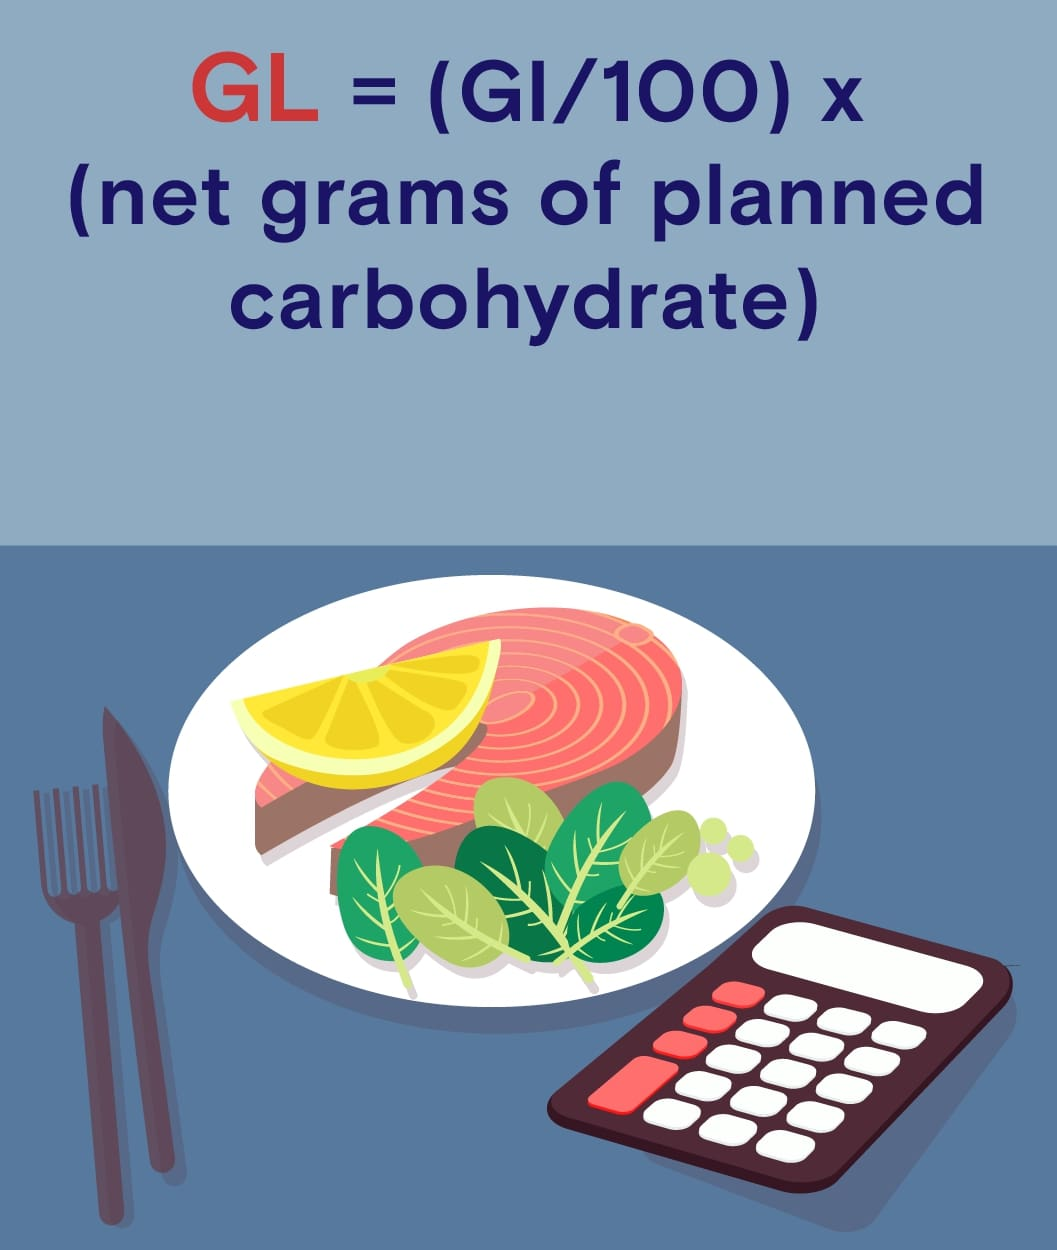 Glycemic Load (GL) = (GI/100) x (net grams of planned carbohydrate)